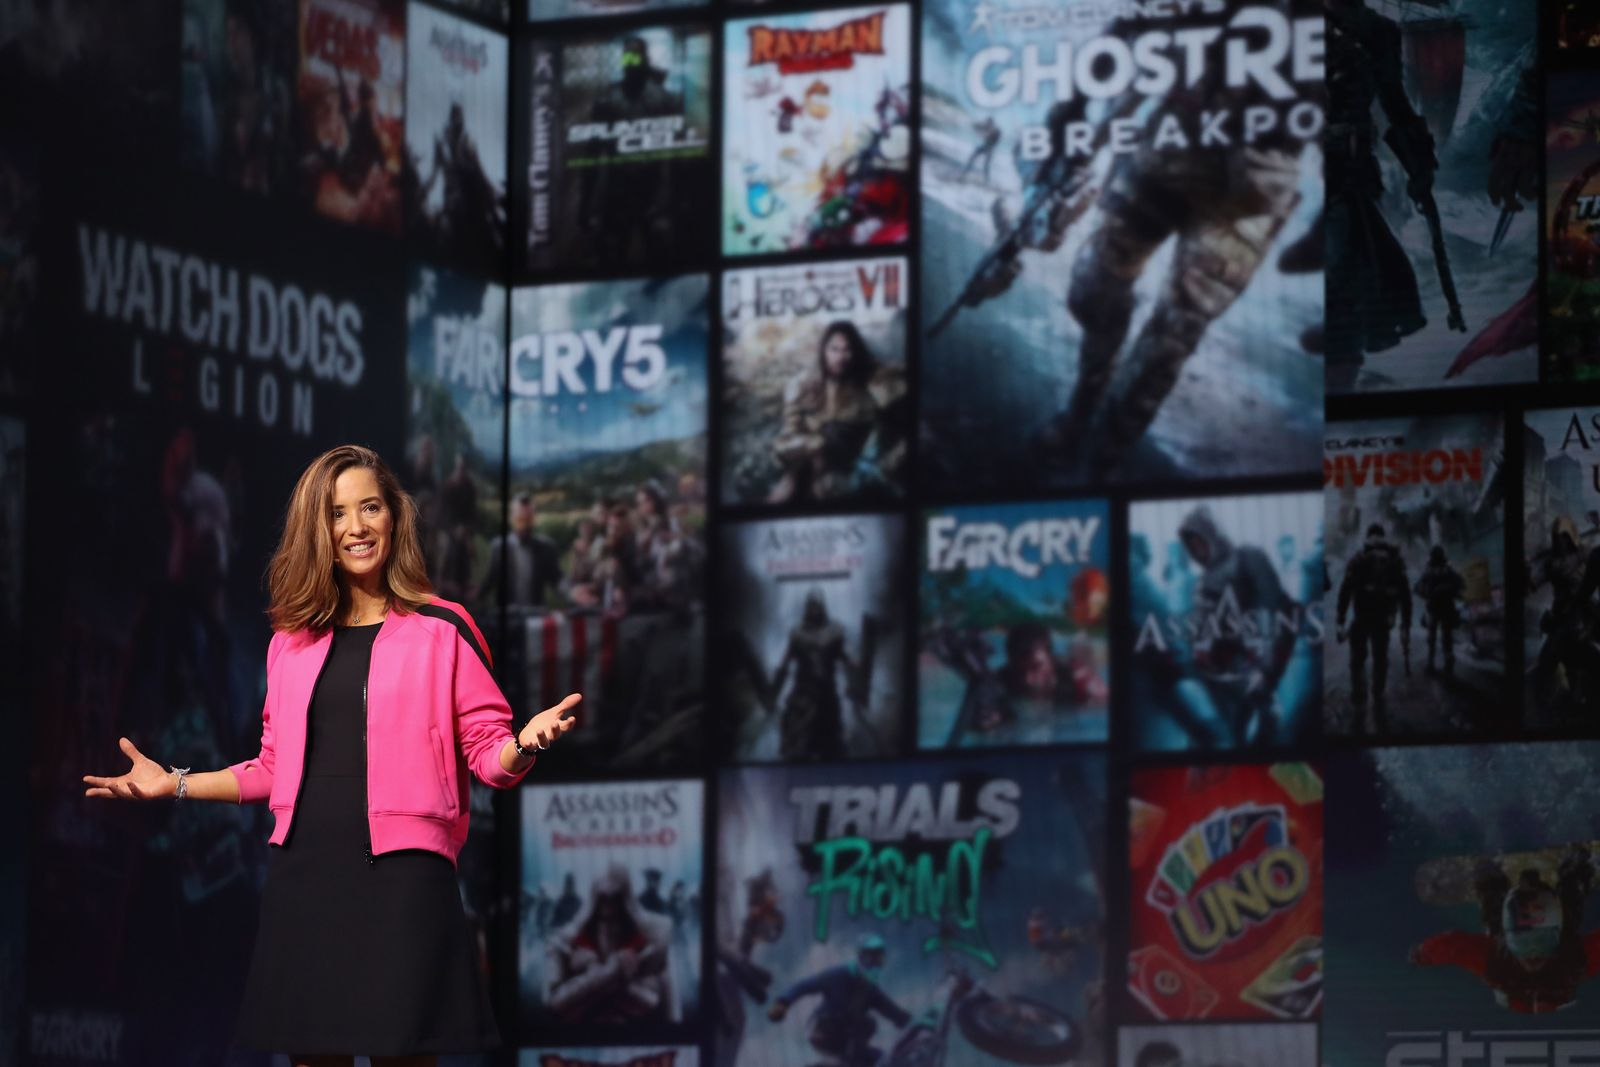 US-UBISOFT-DEBUTS-ITS-NEW-PRODUCTS-AT-E3-GAMING-EVENT-IN-LOS-ANG